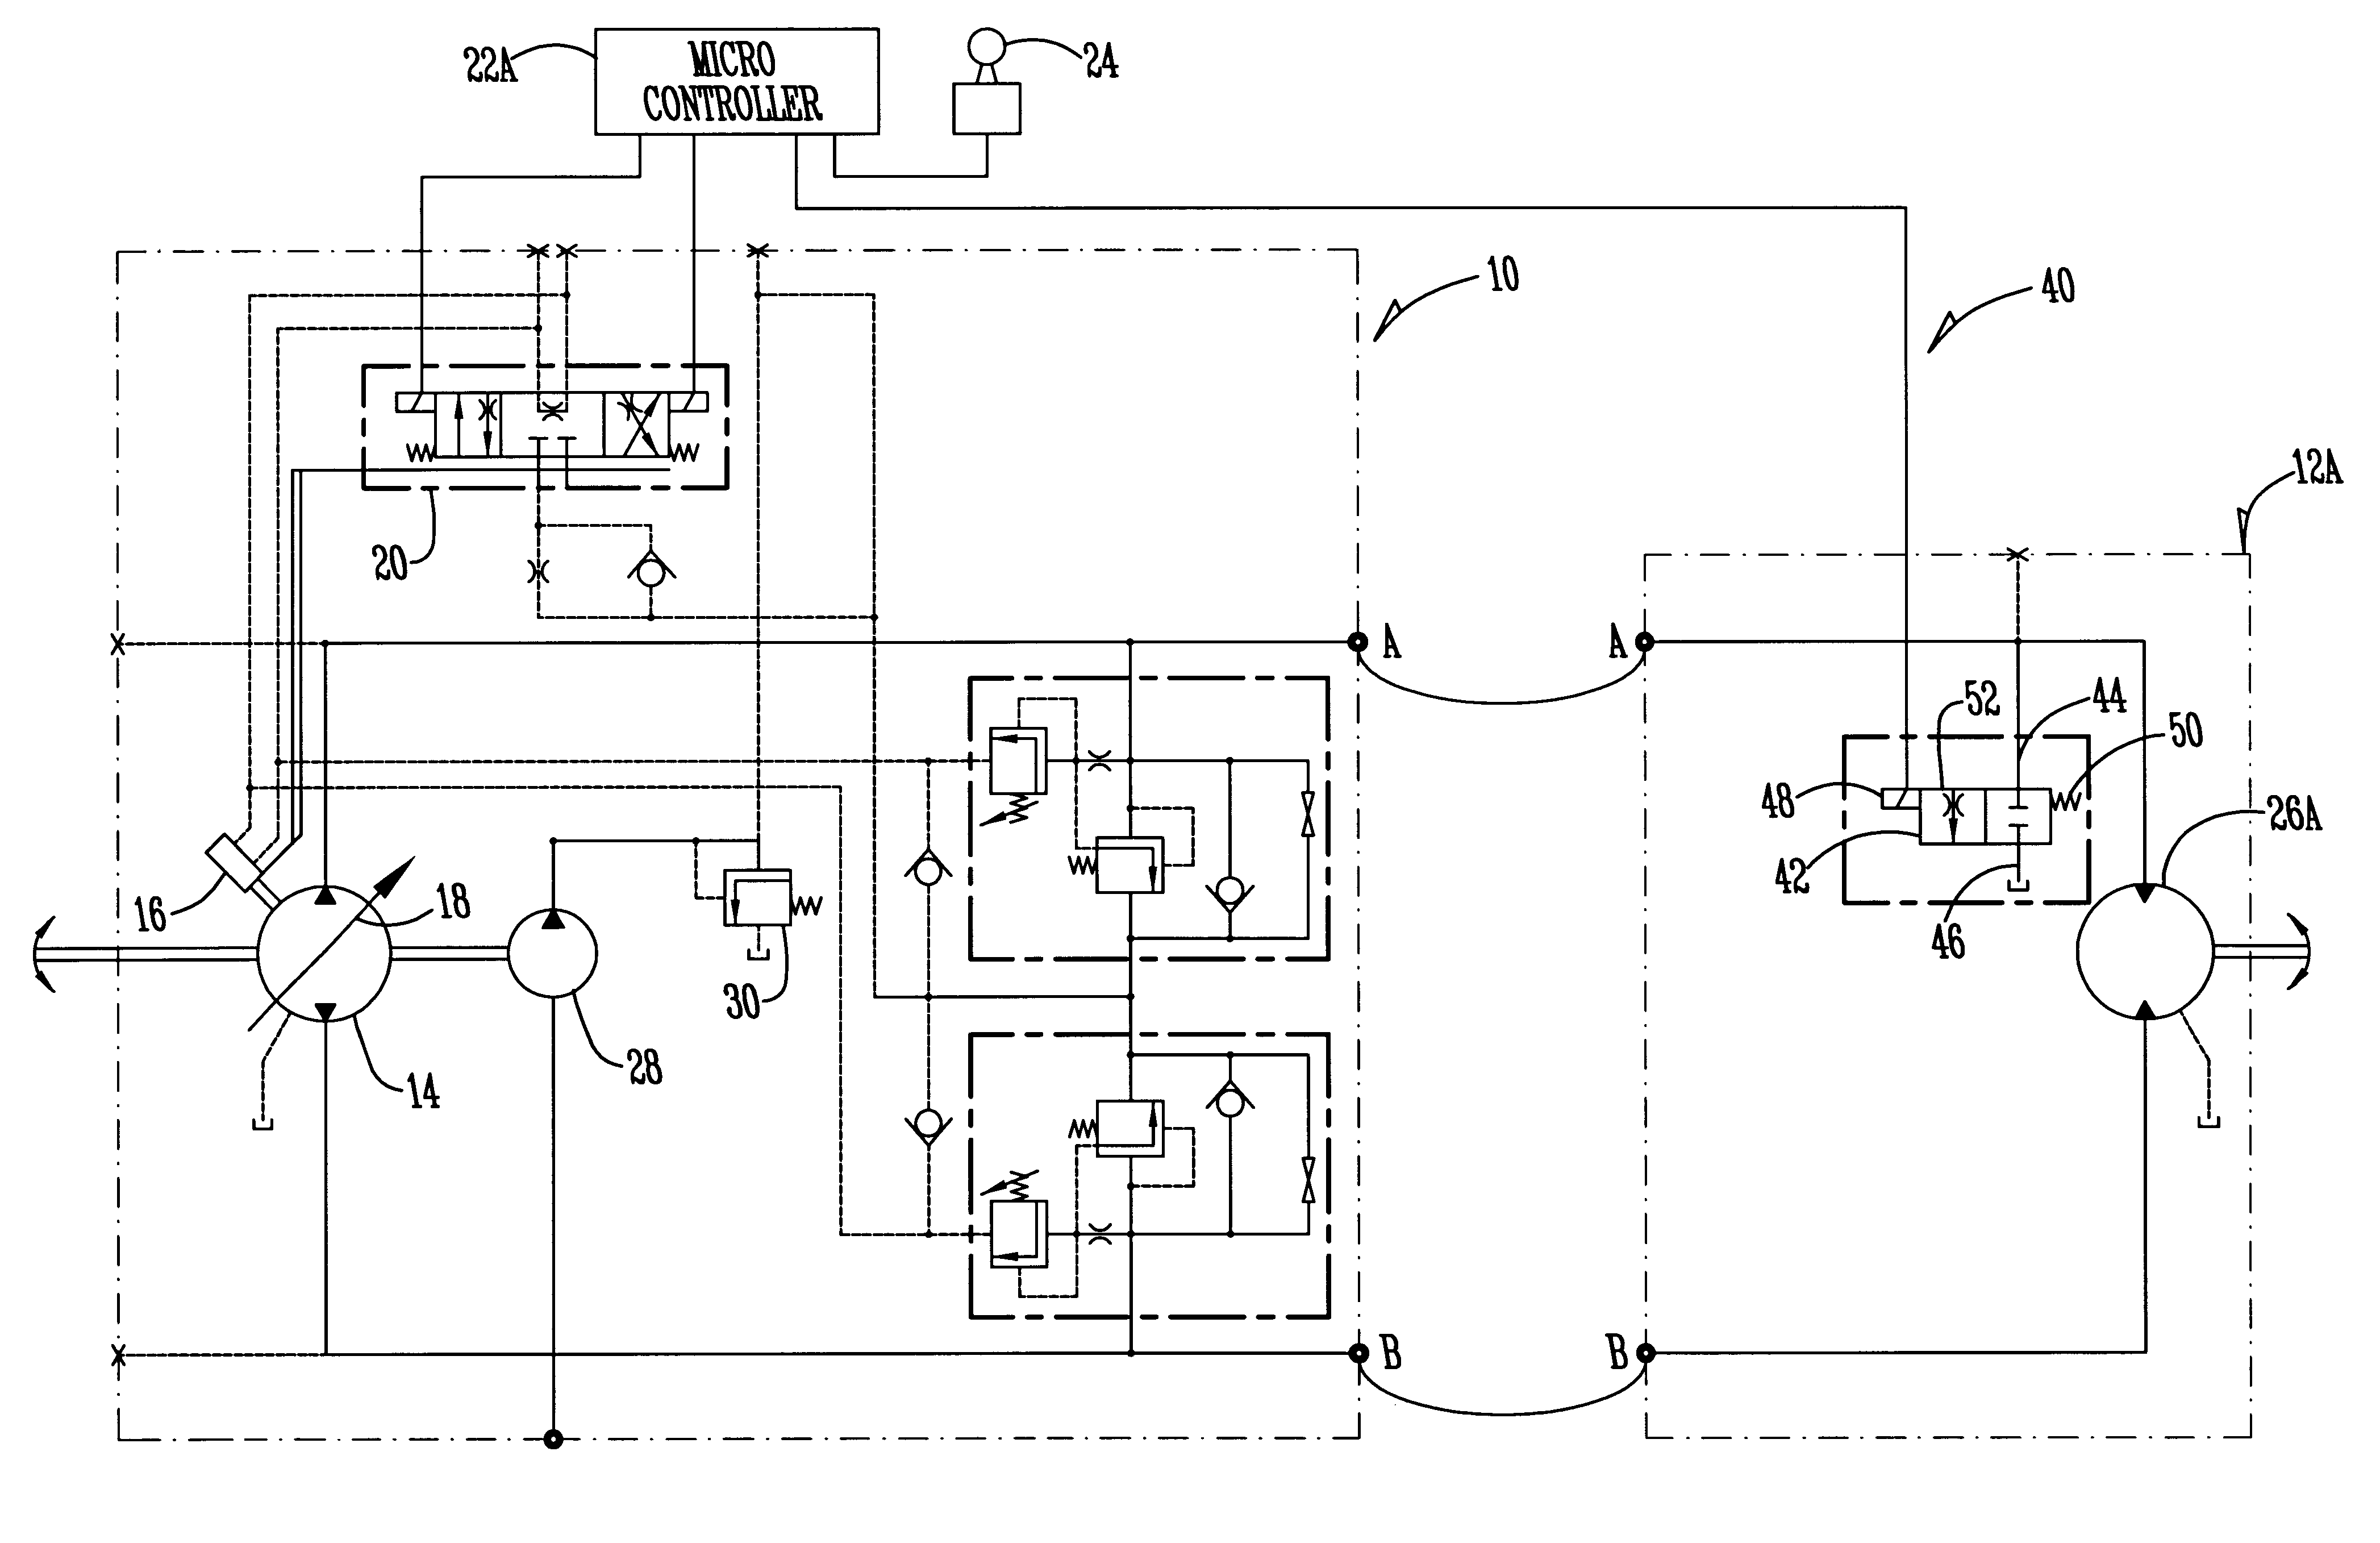 single line diagram with Us6430923 on US6430923 together with 2railroundyard likewise Rotating Wind Turbine Drawing Gm536924343 58043984 furthermore Installing Kitchen Sink Drain further 158.